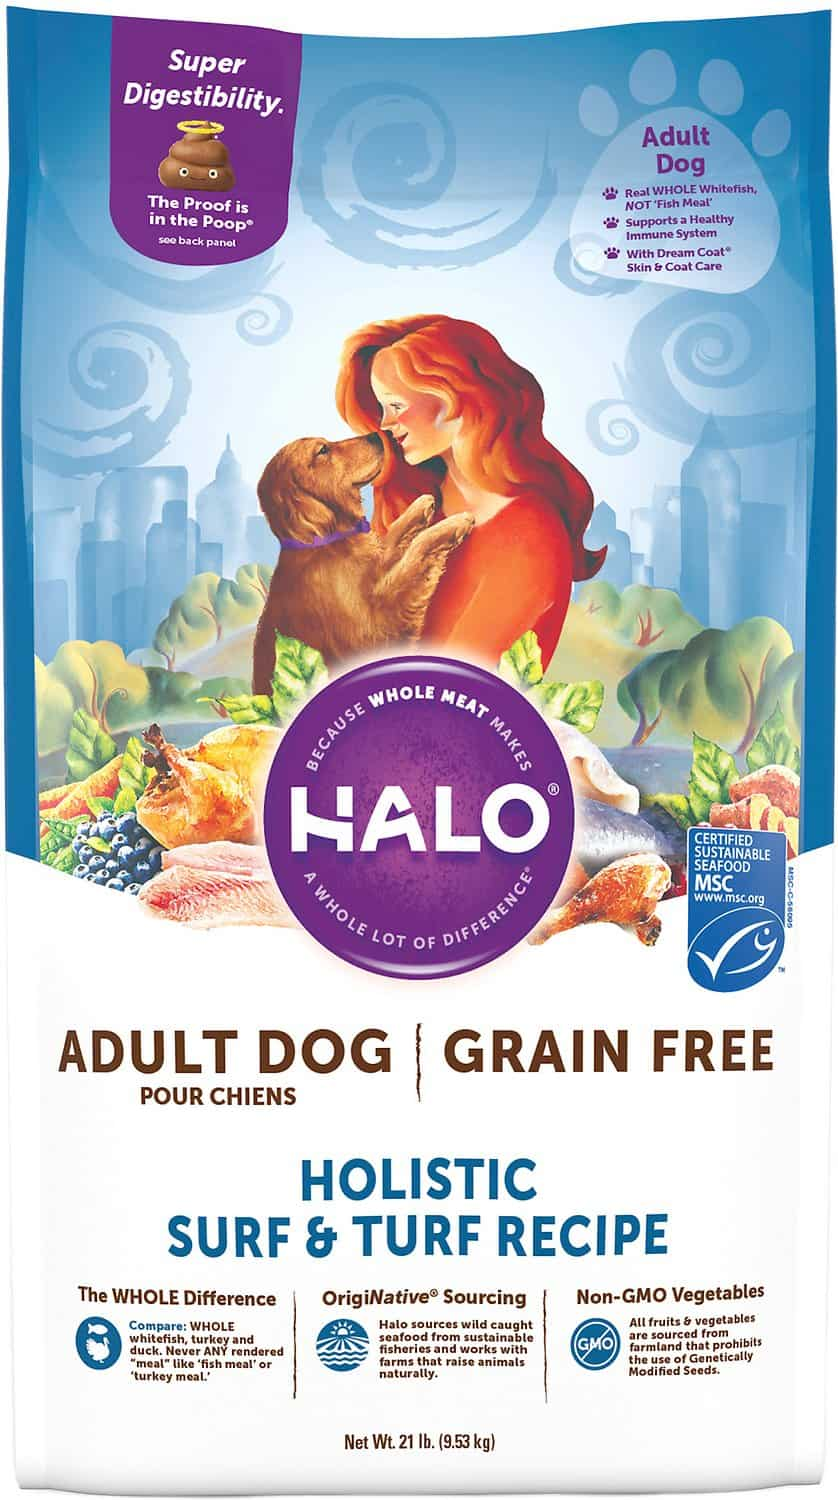 Halo Dog Food: 2021 Review, Recalls & Coupons 13